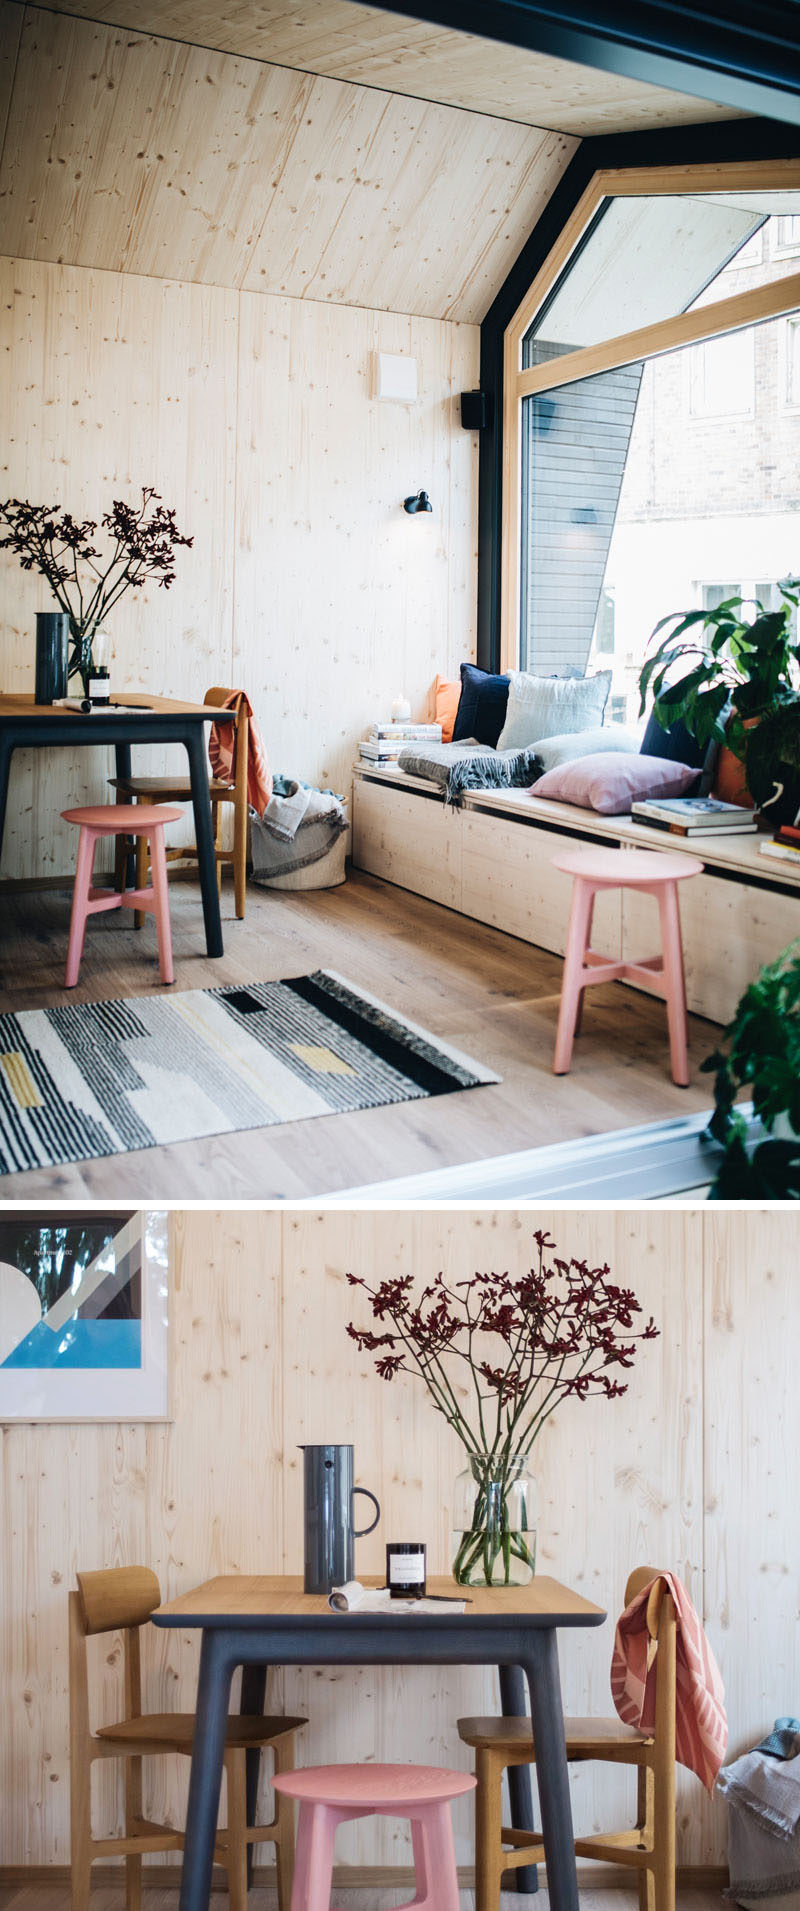 In this tiny home multi-functional lounge, there's a window seat that transforms into a guest bed, and a small dining area. #TinyHome #UrbanCabin #WindowSeat